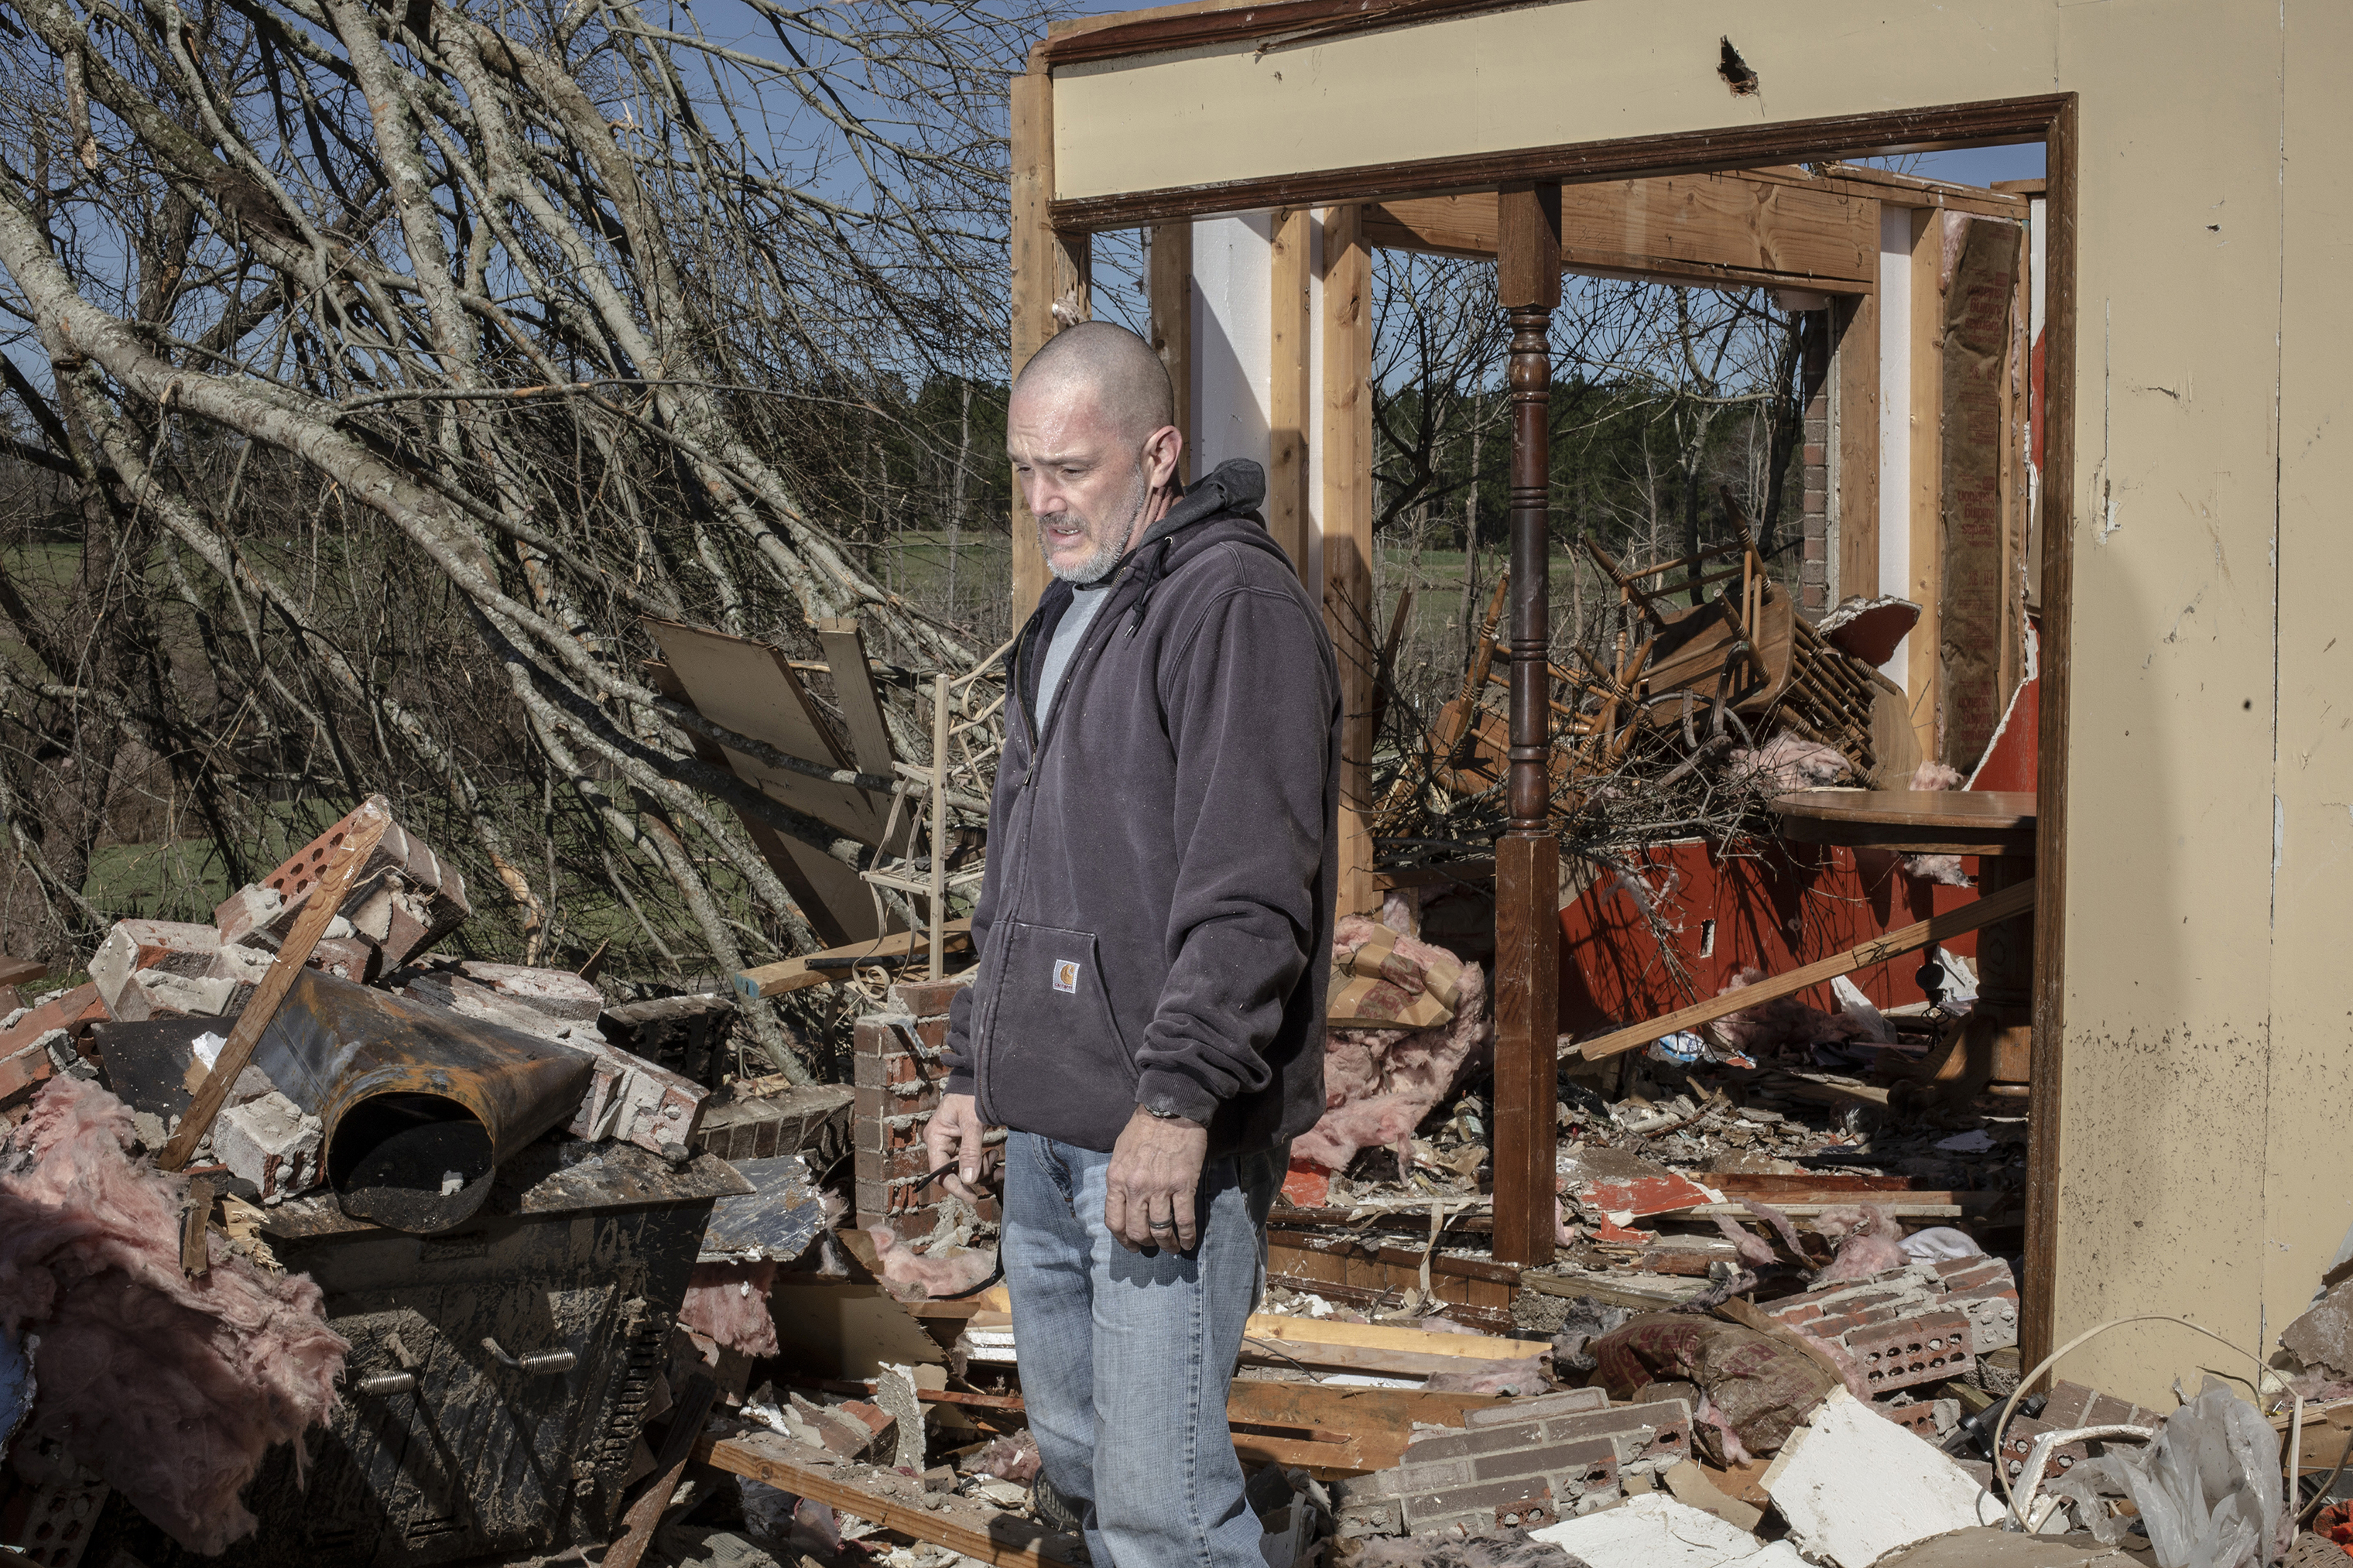 Scott Kimbro poses for a portrait while helping friends sort through the debris of their home after a tornado passed over, killing several people and destroying homes in Beauregard, Alabama, on March 4, 2019.